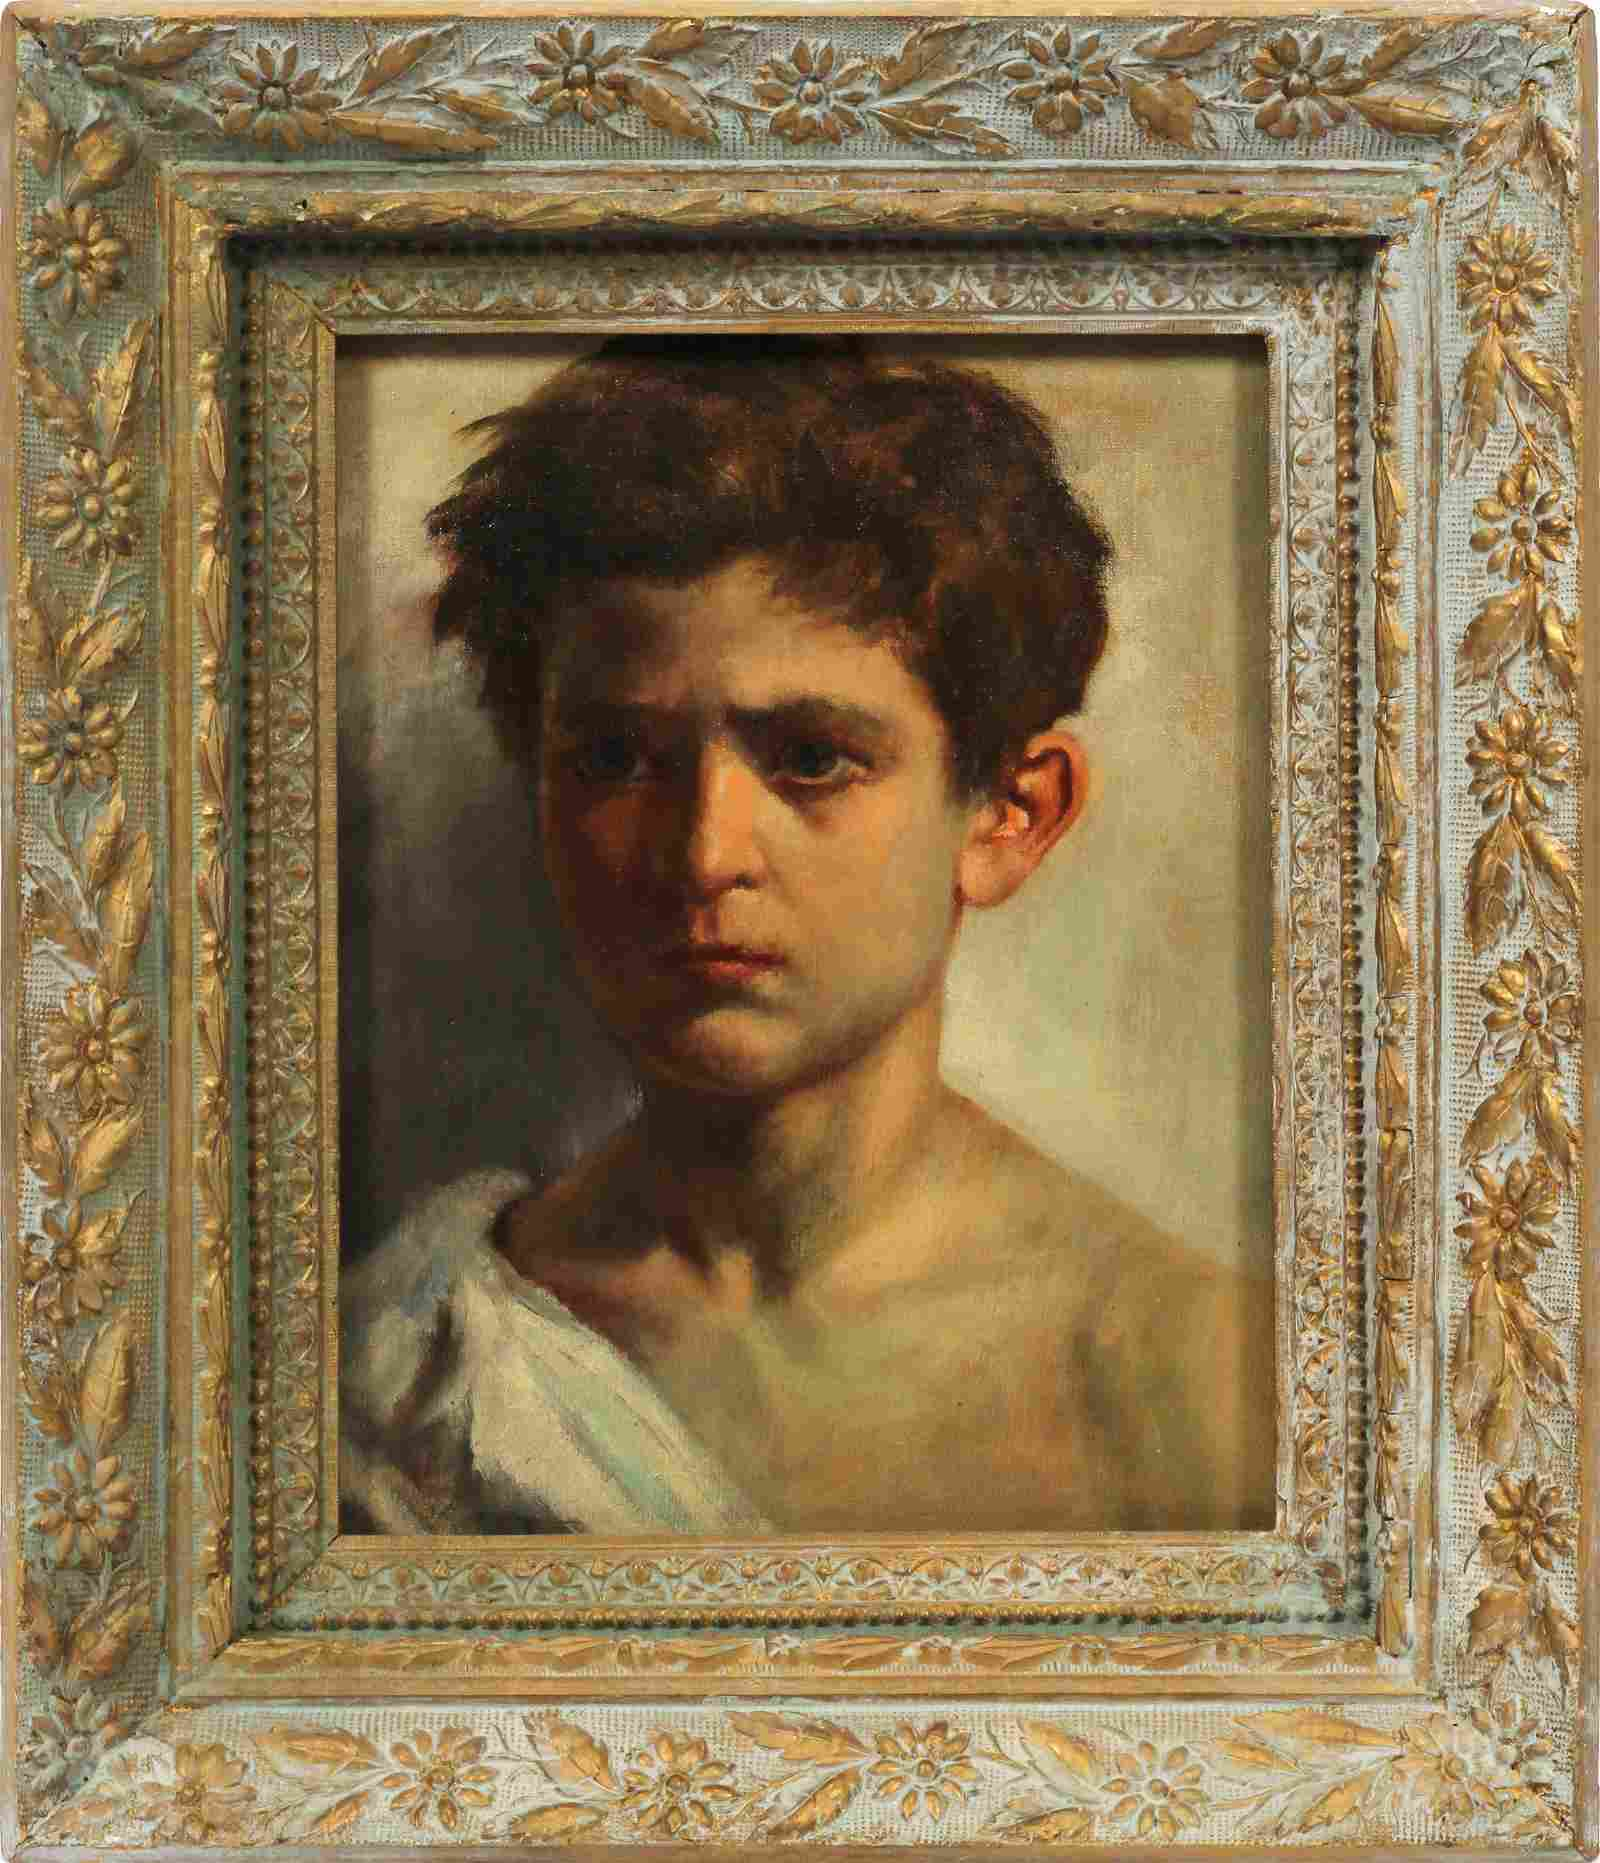 """PORTRAIT OF A YOUNG BOY, OIL PAINTING ON BOARD, H 14"""" W"""